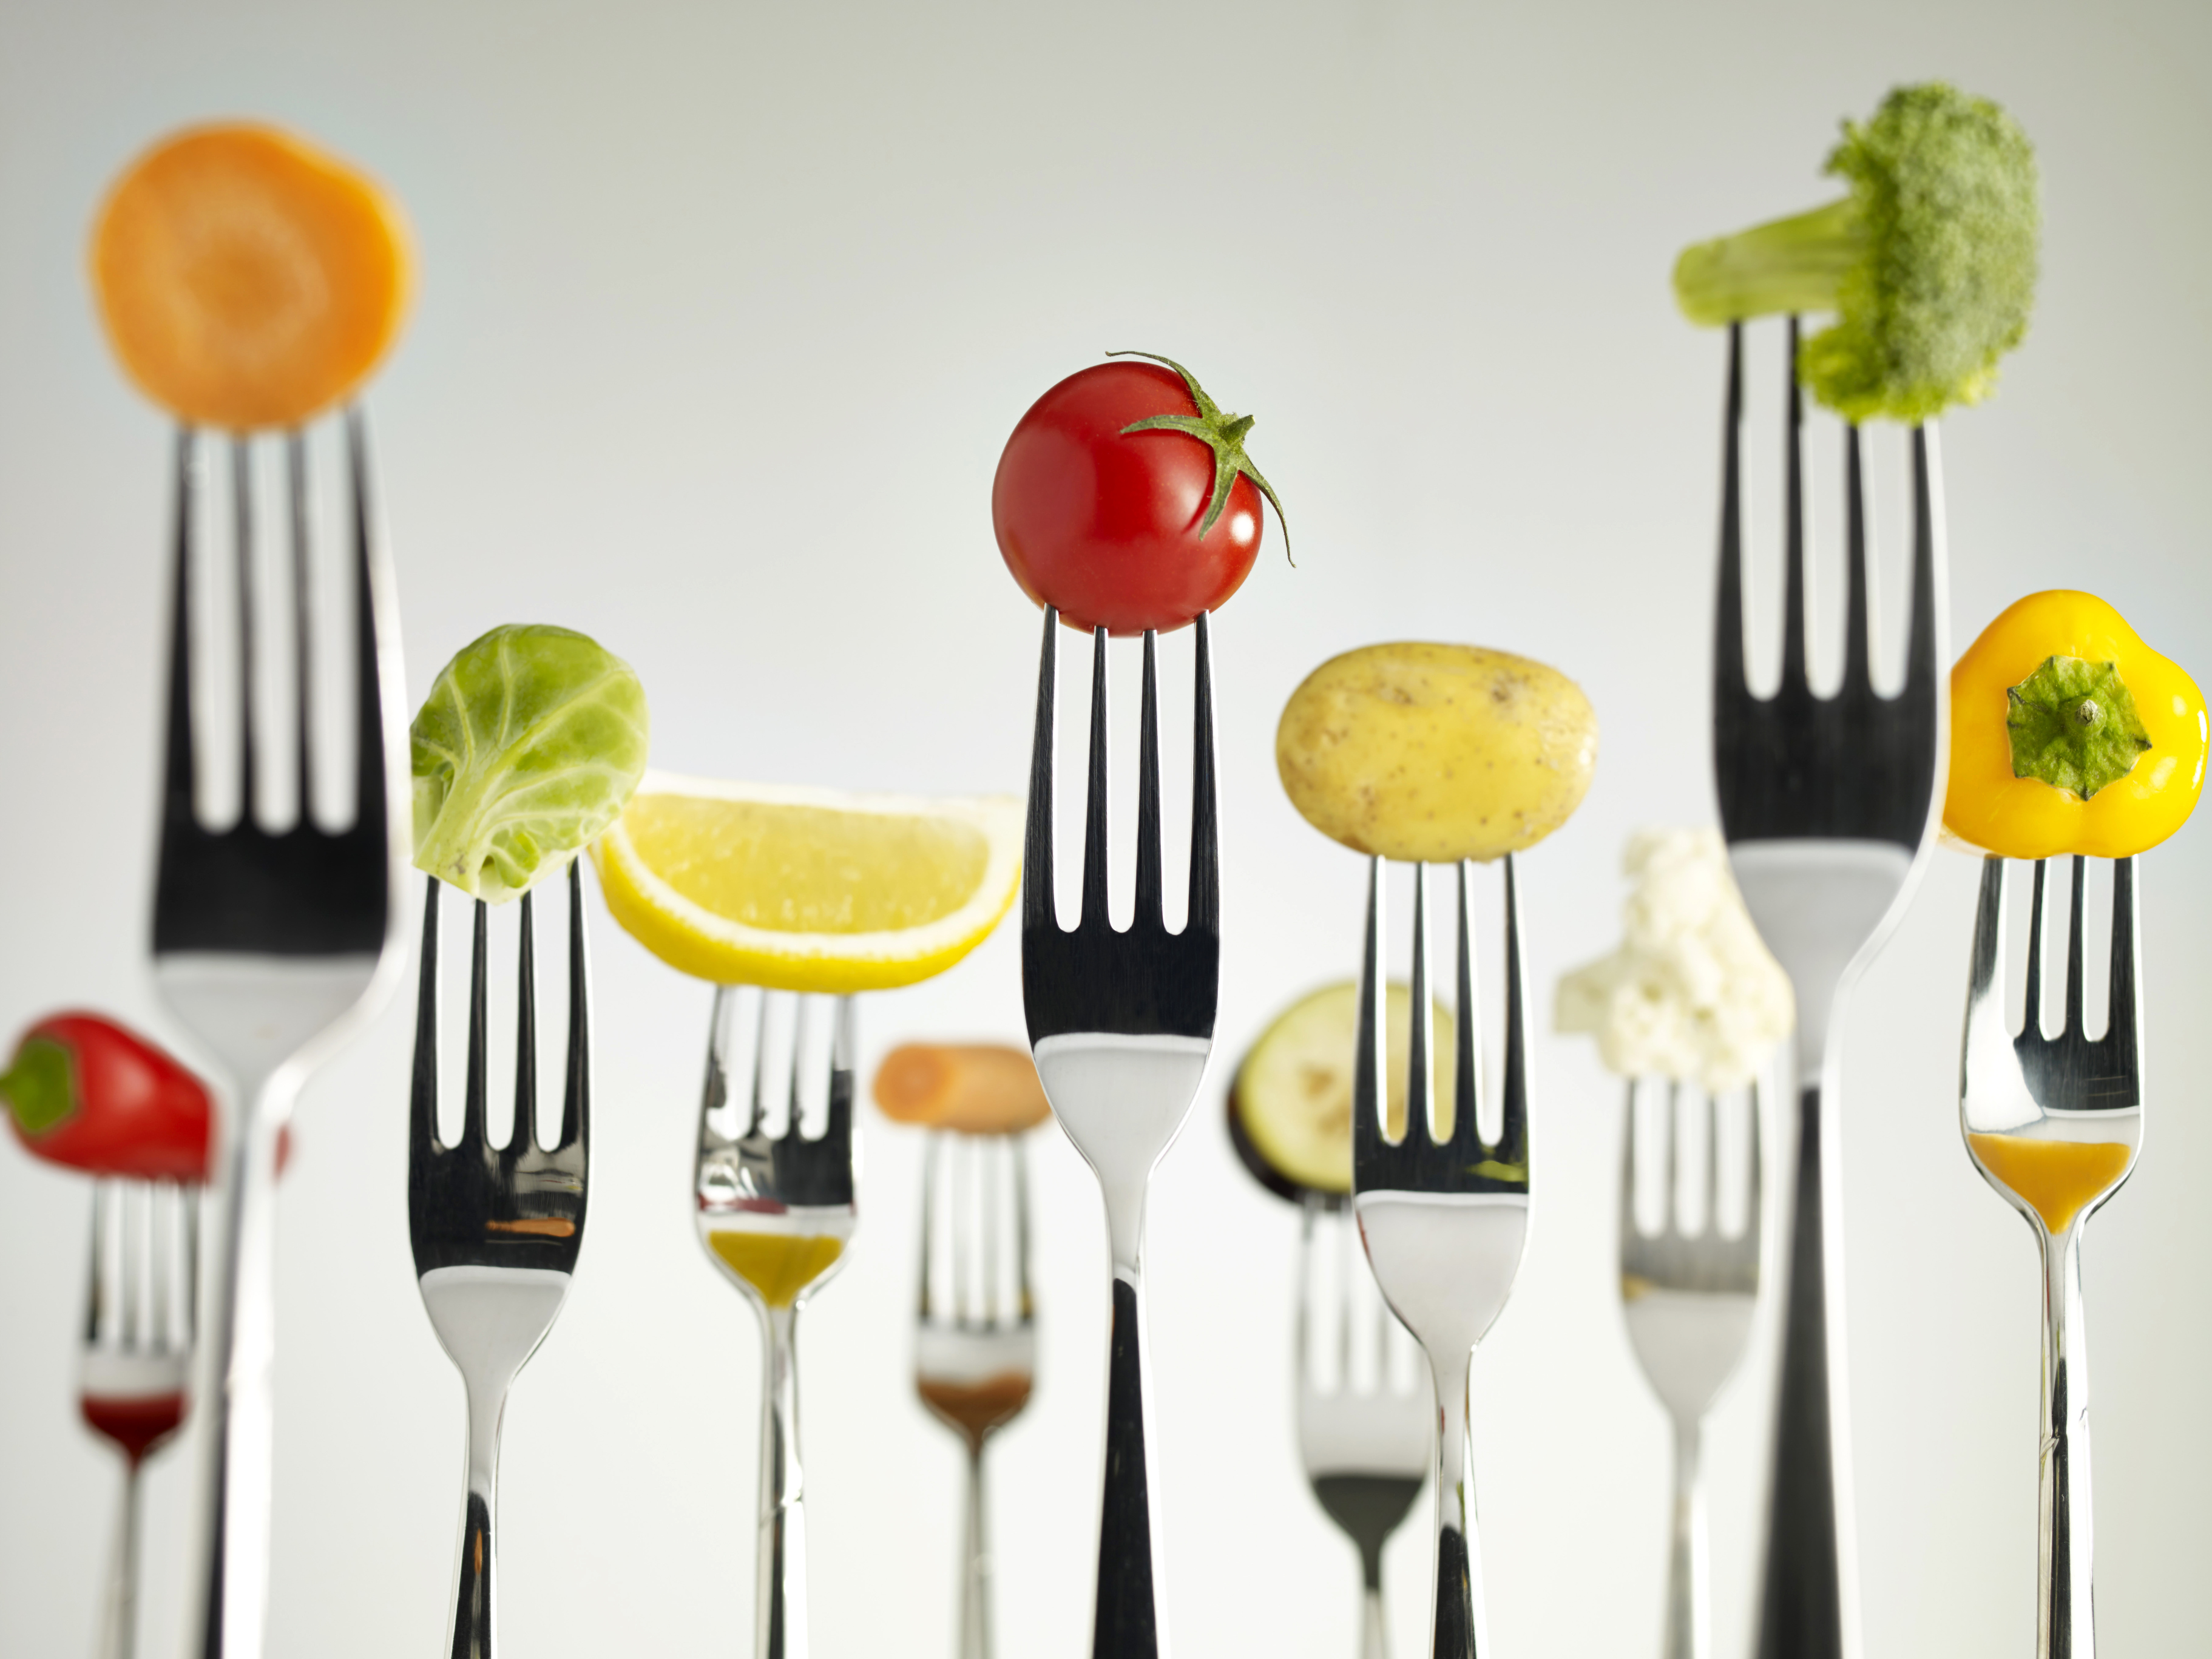 Raw Foods On Forks